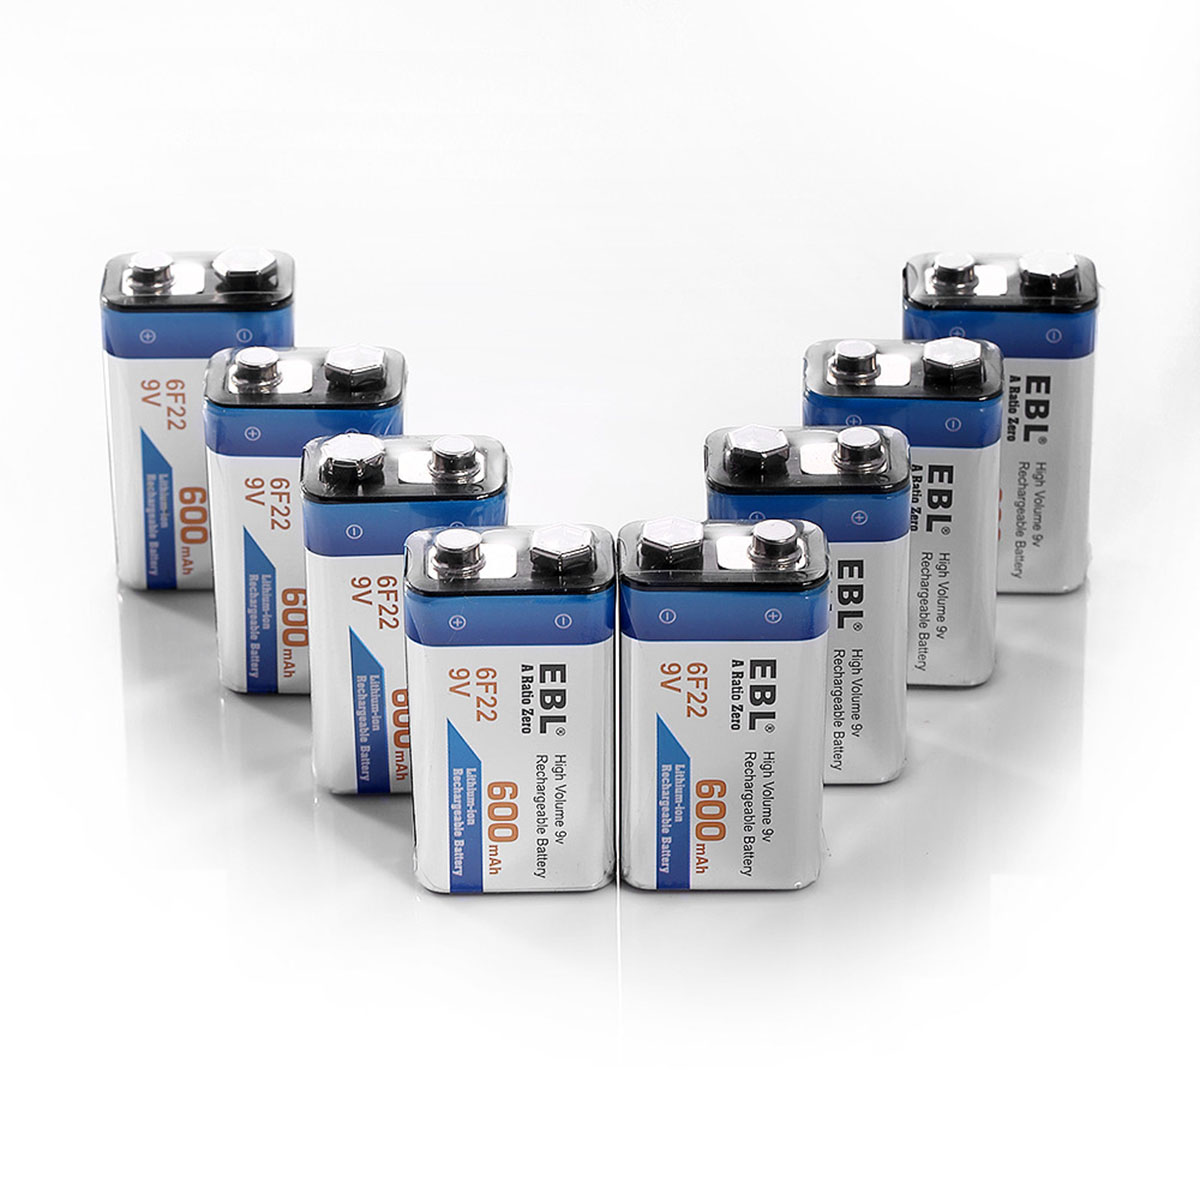 EBL 8-Pack 6F22 9v 600mAh Rechargeable Batteries 9 Volt Lithium-ion Replacement Battery